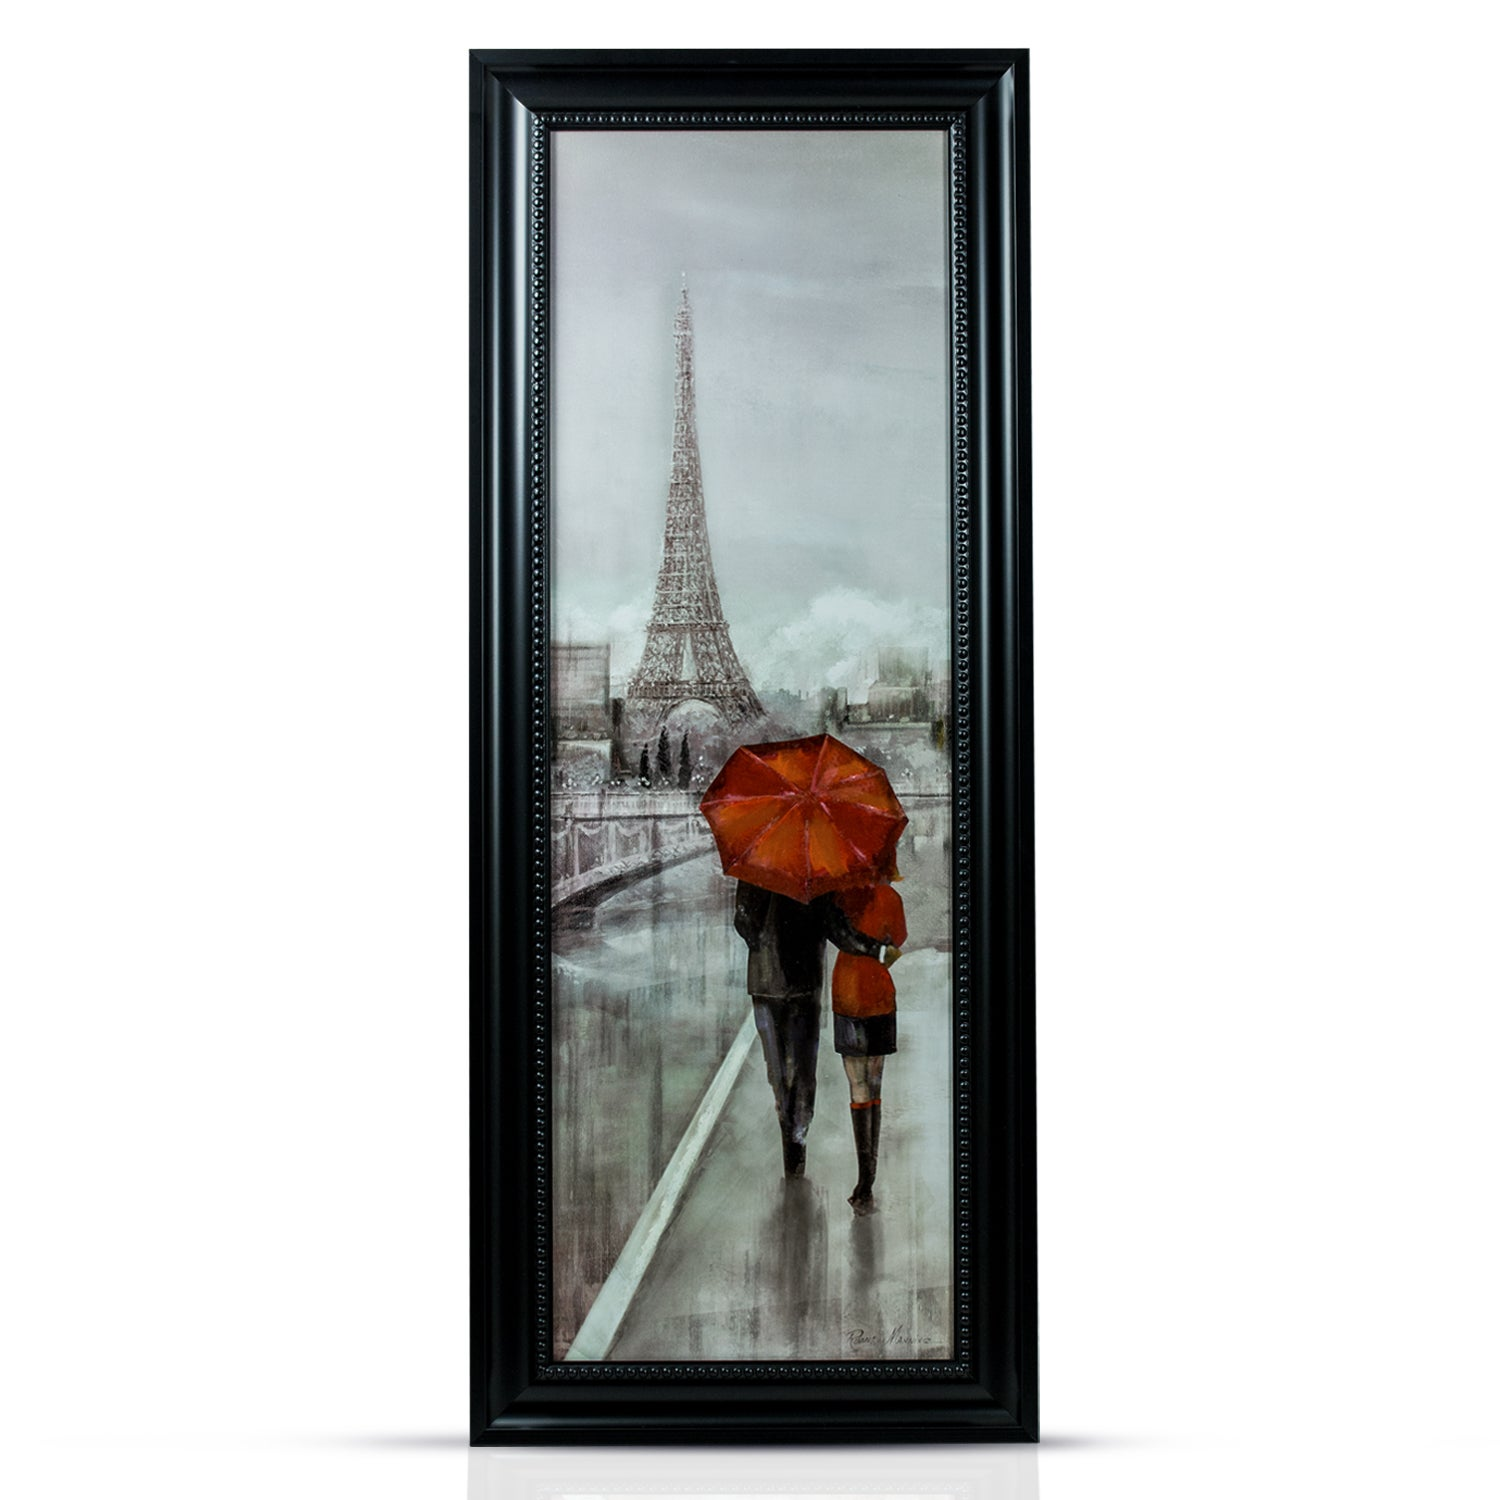 Paris eiffel tower romantic stroll framed canvas painting print paris eiffel tower romantic stroll framed canvas painting print wall art free shipping today overstock 22439385 jeuxipadfo Images